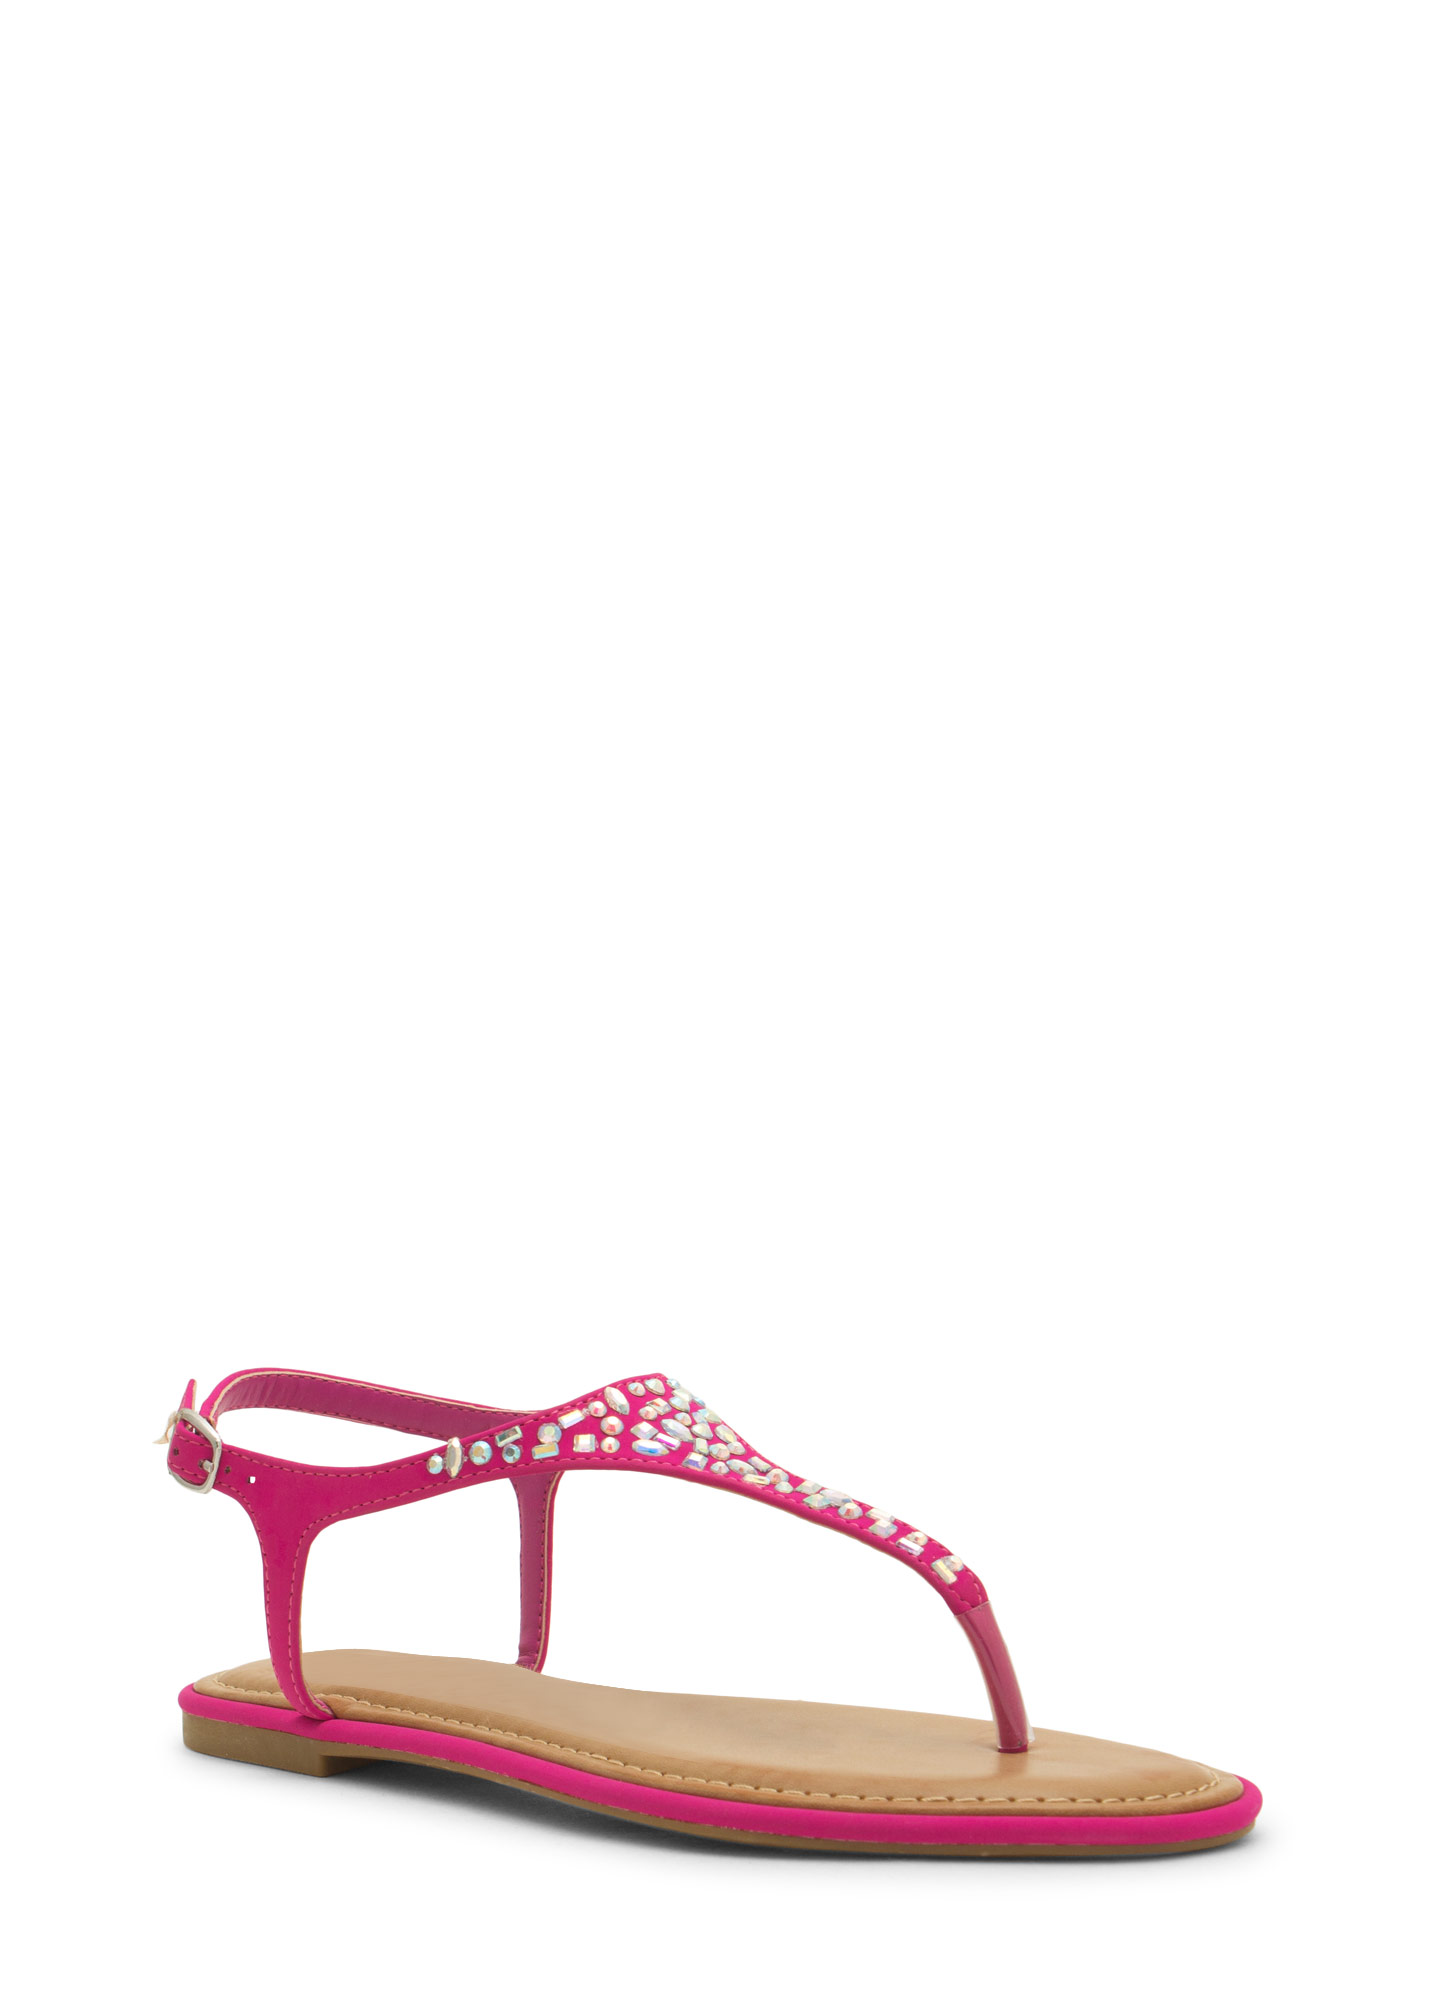 Embellished Tapered T-Strap Sandals MAGENTA